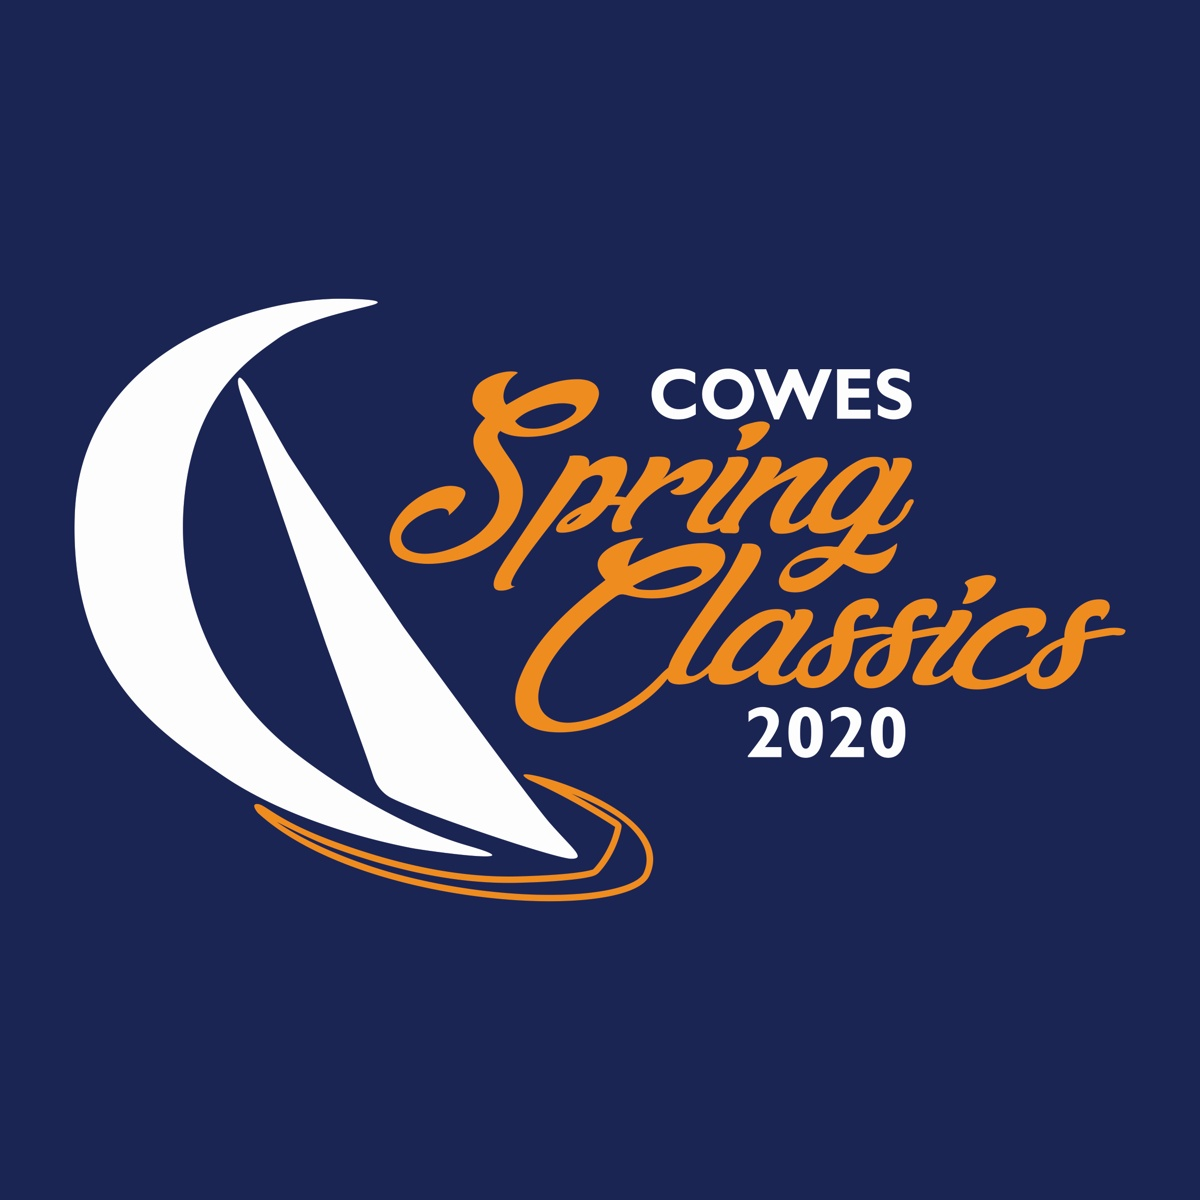 Cowes Spring Classics Official Brandign Partner